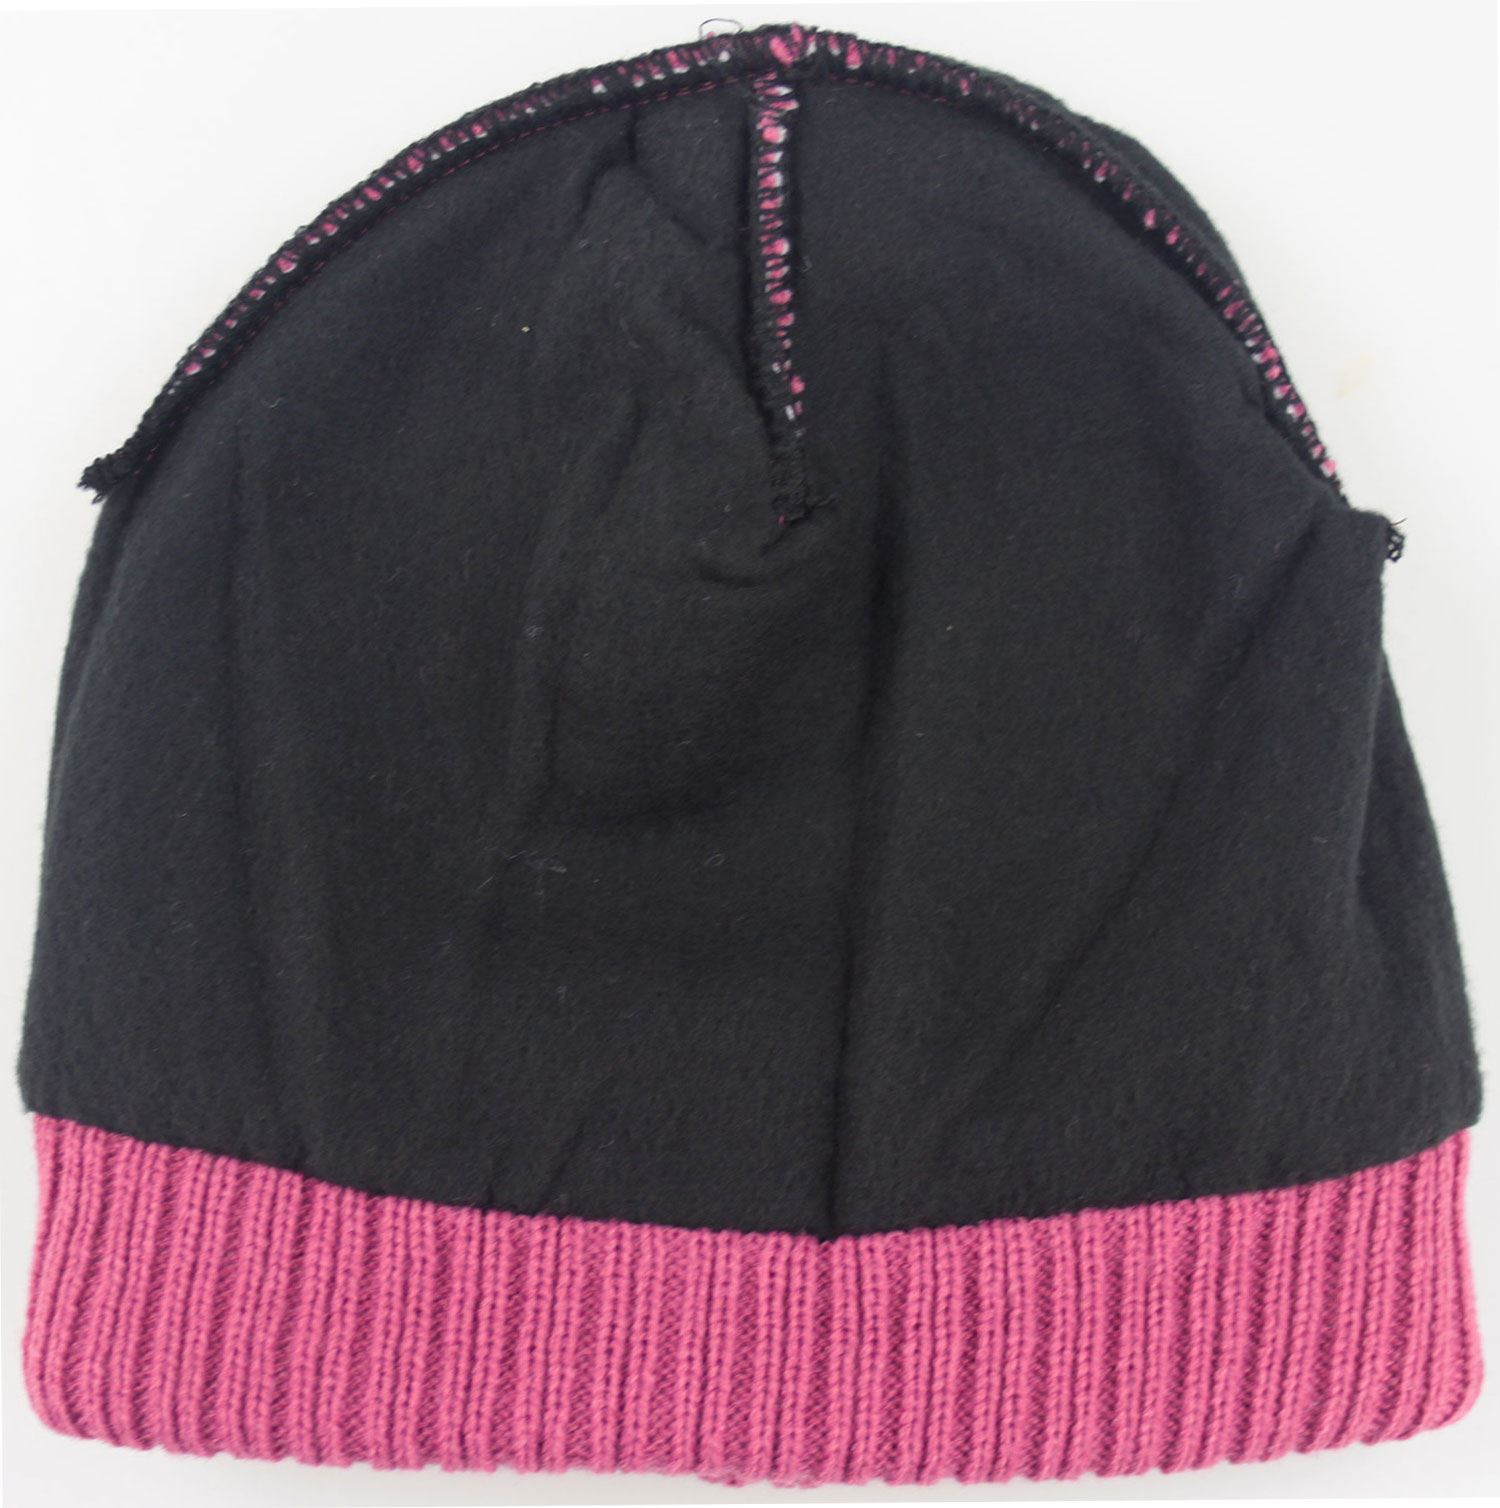 Knitting Pattern Lined Hat : New Ladies Fleece Lined Hat Woolly Thinsulate Winter ...